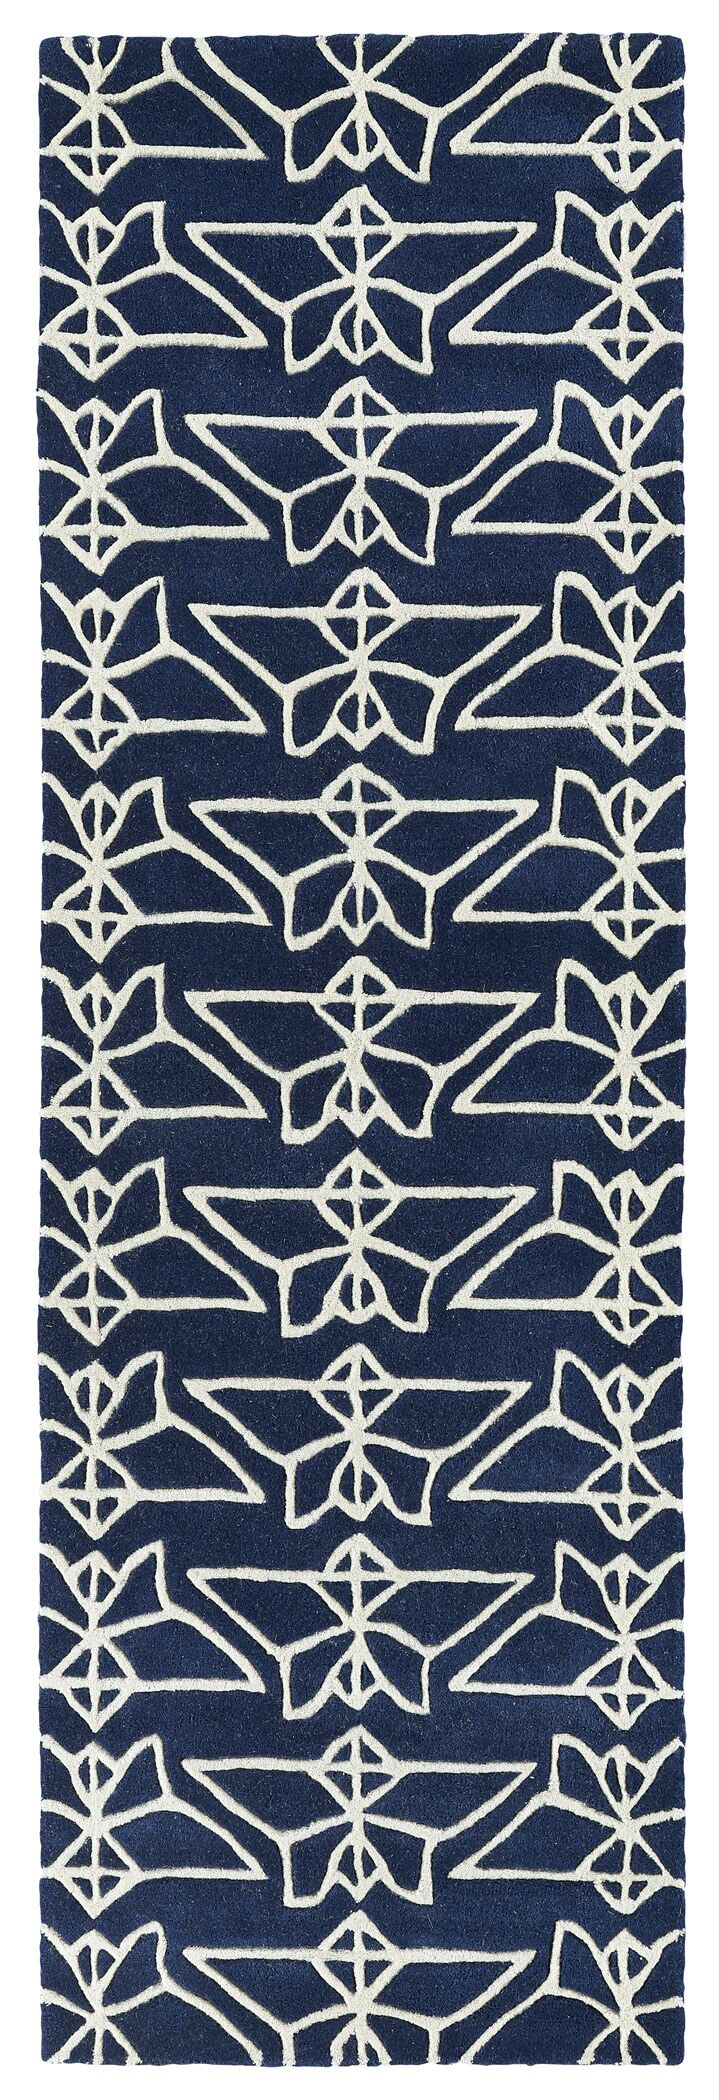 Ronnie Hand-Tufted Navy Area Rug Rug Size: Runner 2'6